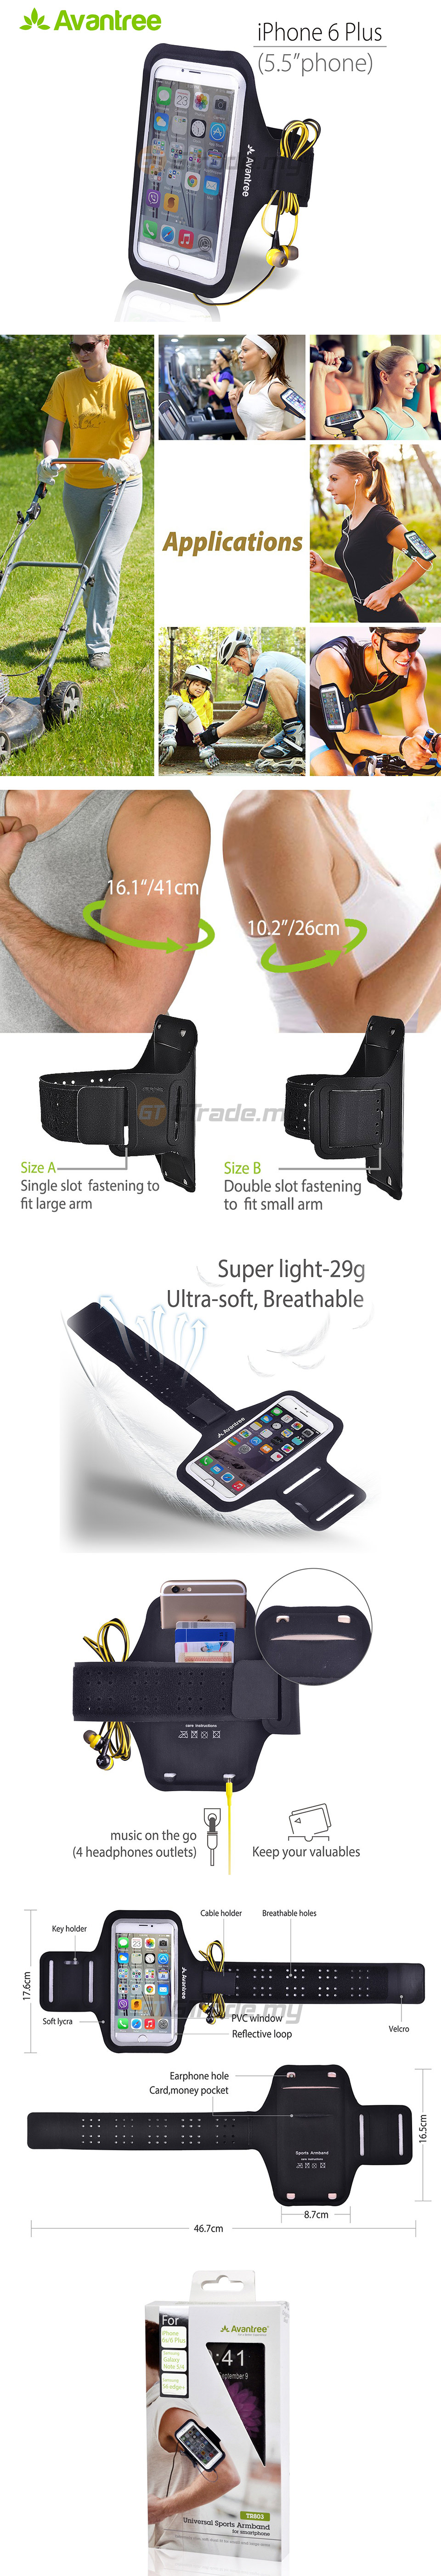 avantree-tr803-jogging-running-super-slim-lycra-sports-armband-iphone-note-p